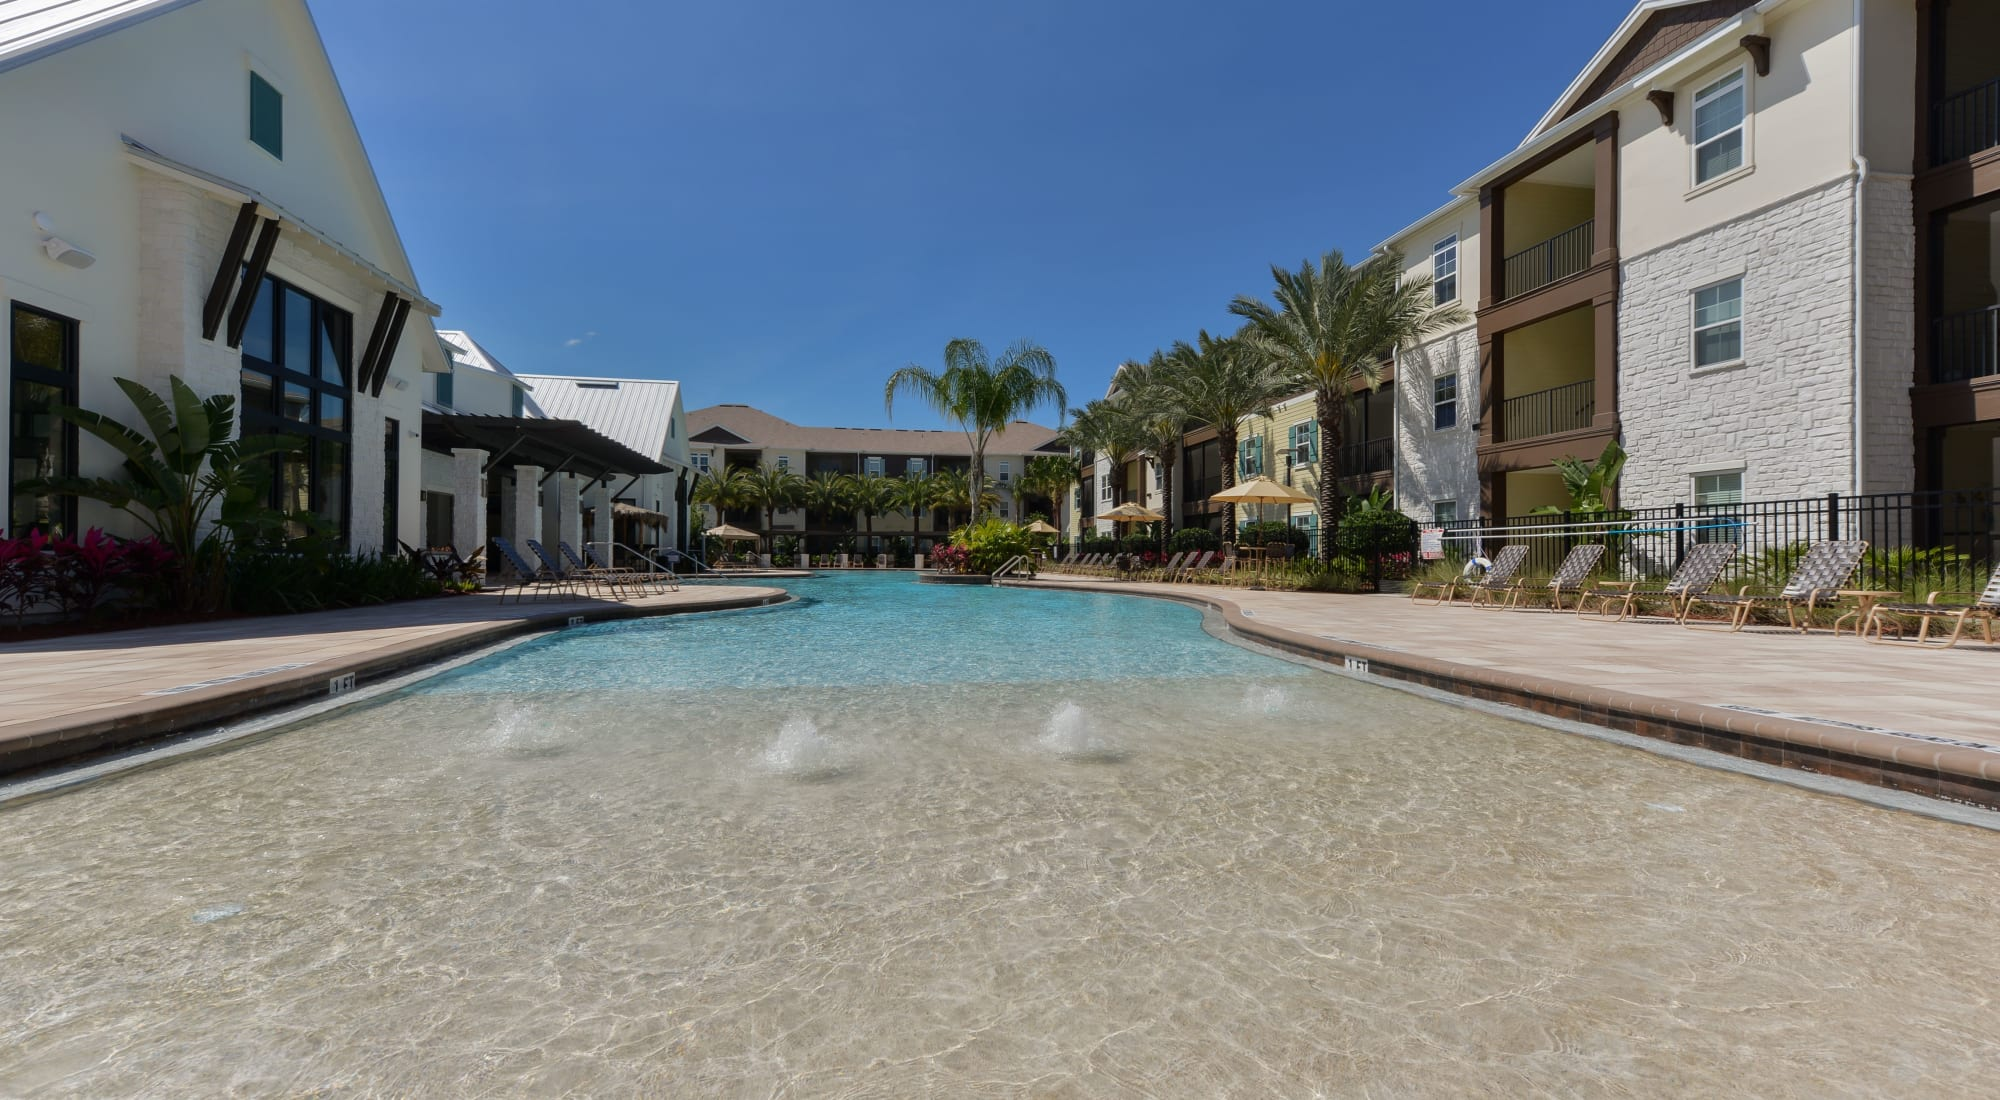 Apartments at Cabana Club and Galleria Club in Jacksonville, Florida